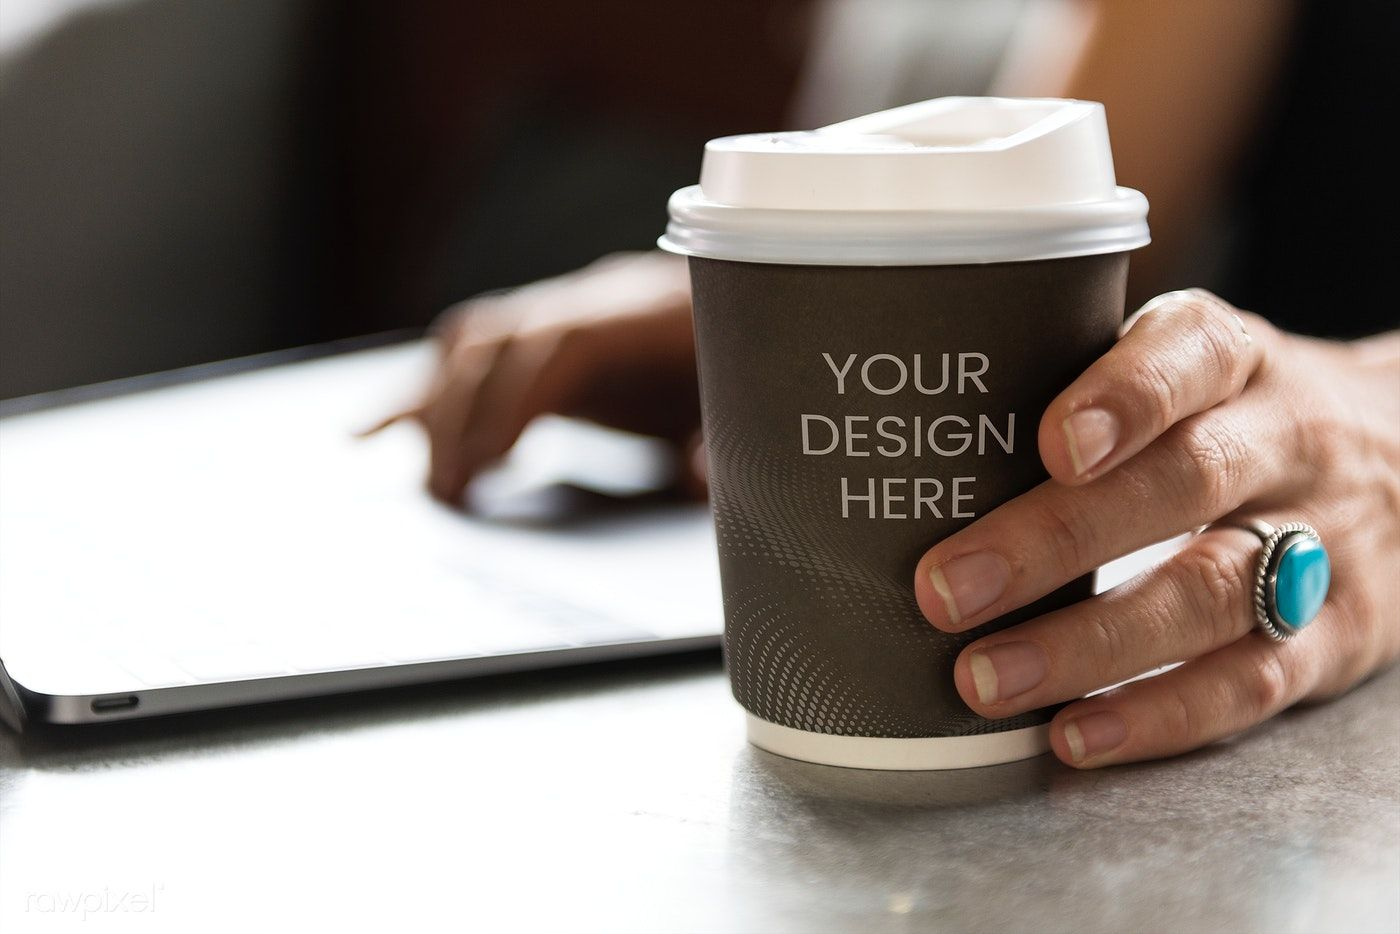 Download premium psd of Hot coffee takeaway cup mockup